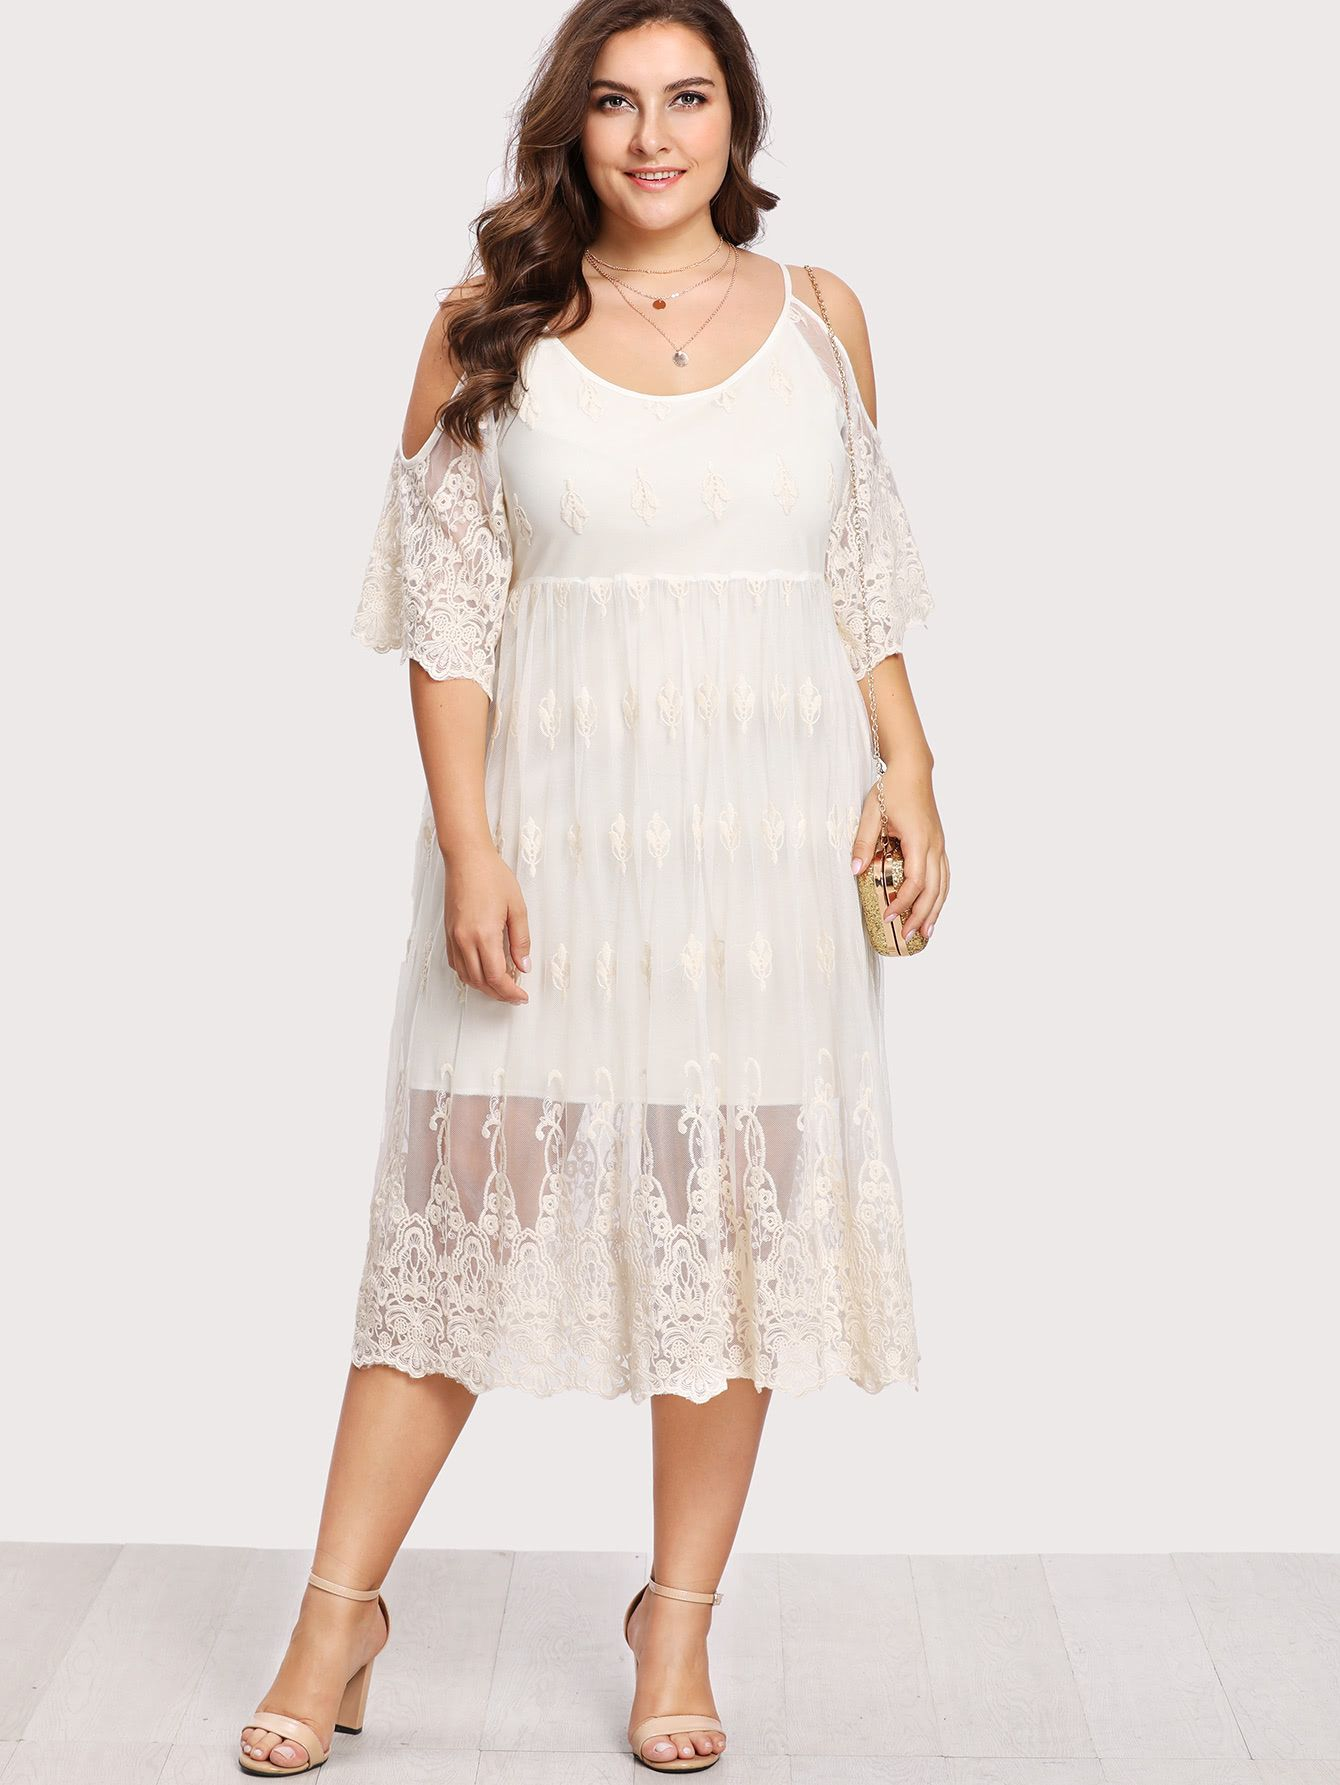 Plus Embroidery Lace Overlay Open Shoulder Dress Lace Overlay Dress Plus Size Dresses Open Shoulder Dress [ 1785 x 1340 Pixel ]